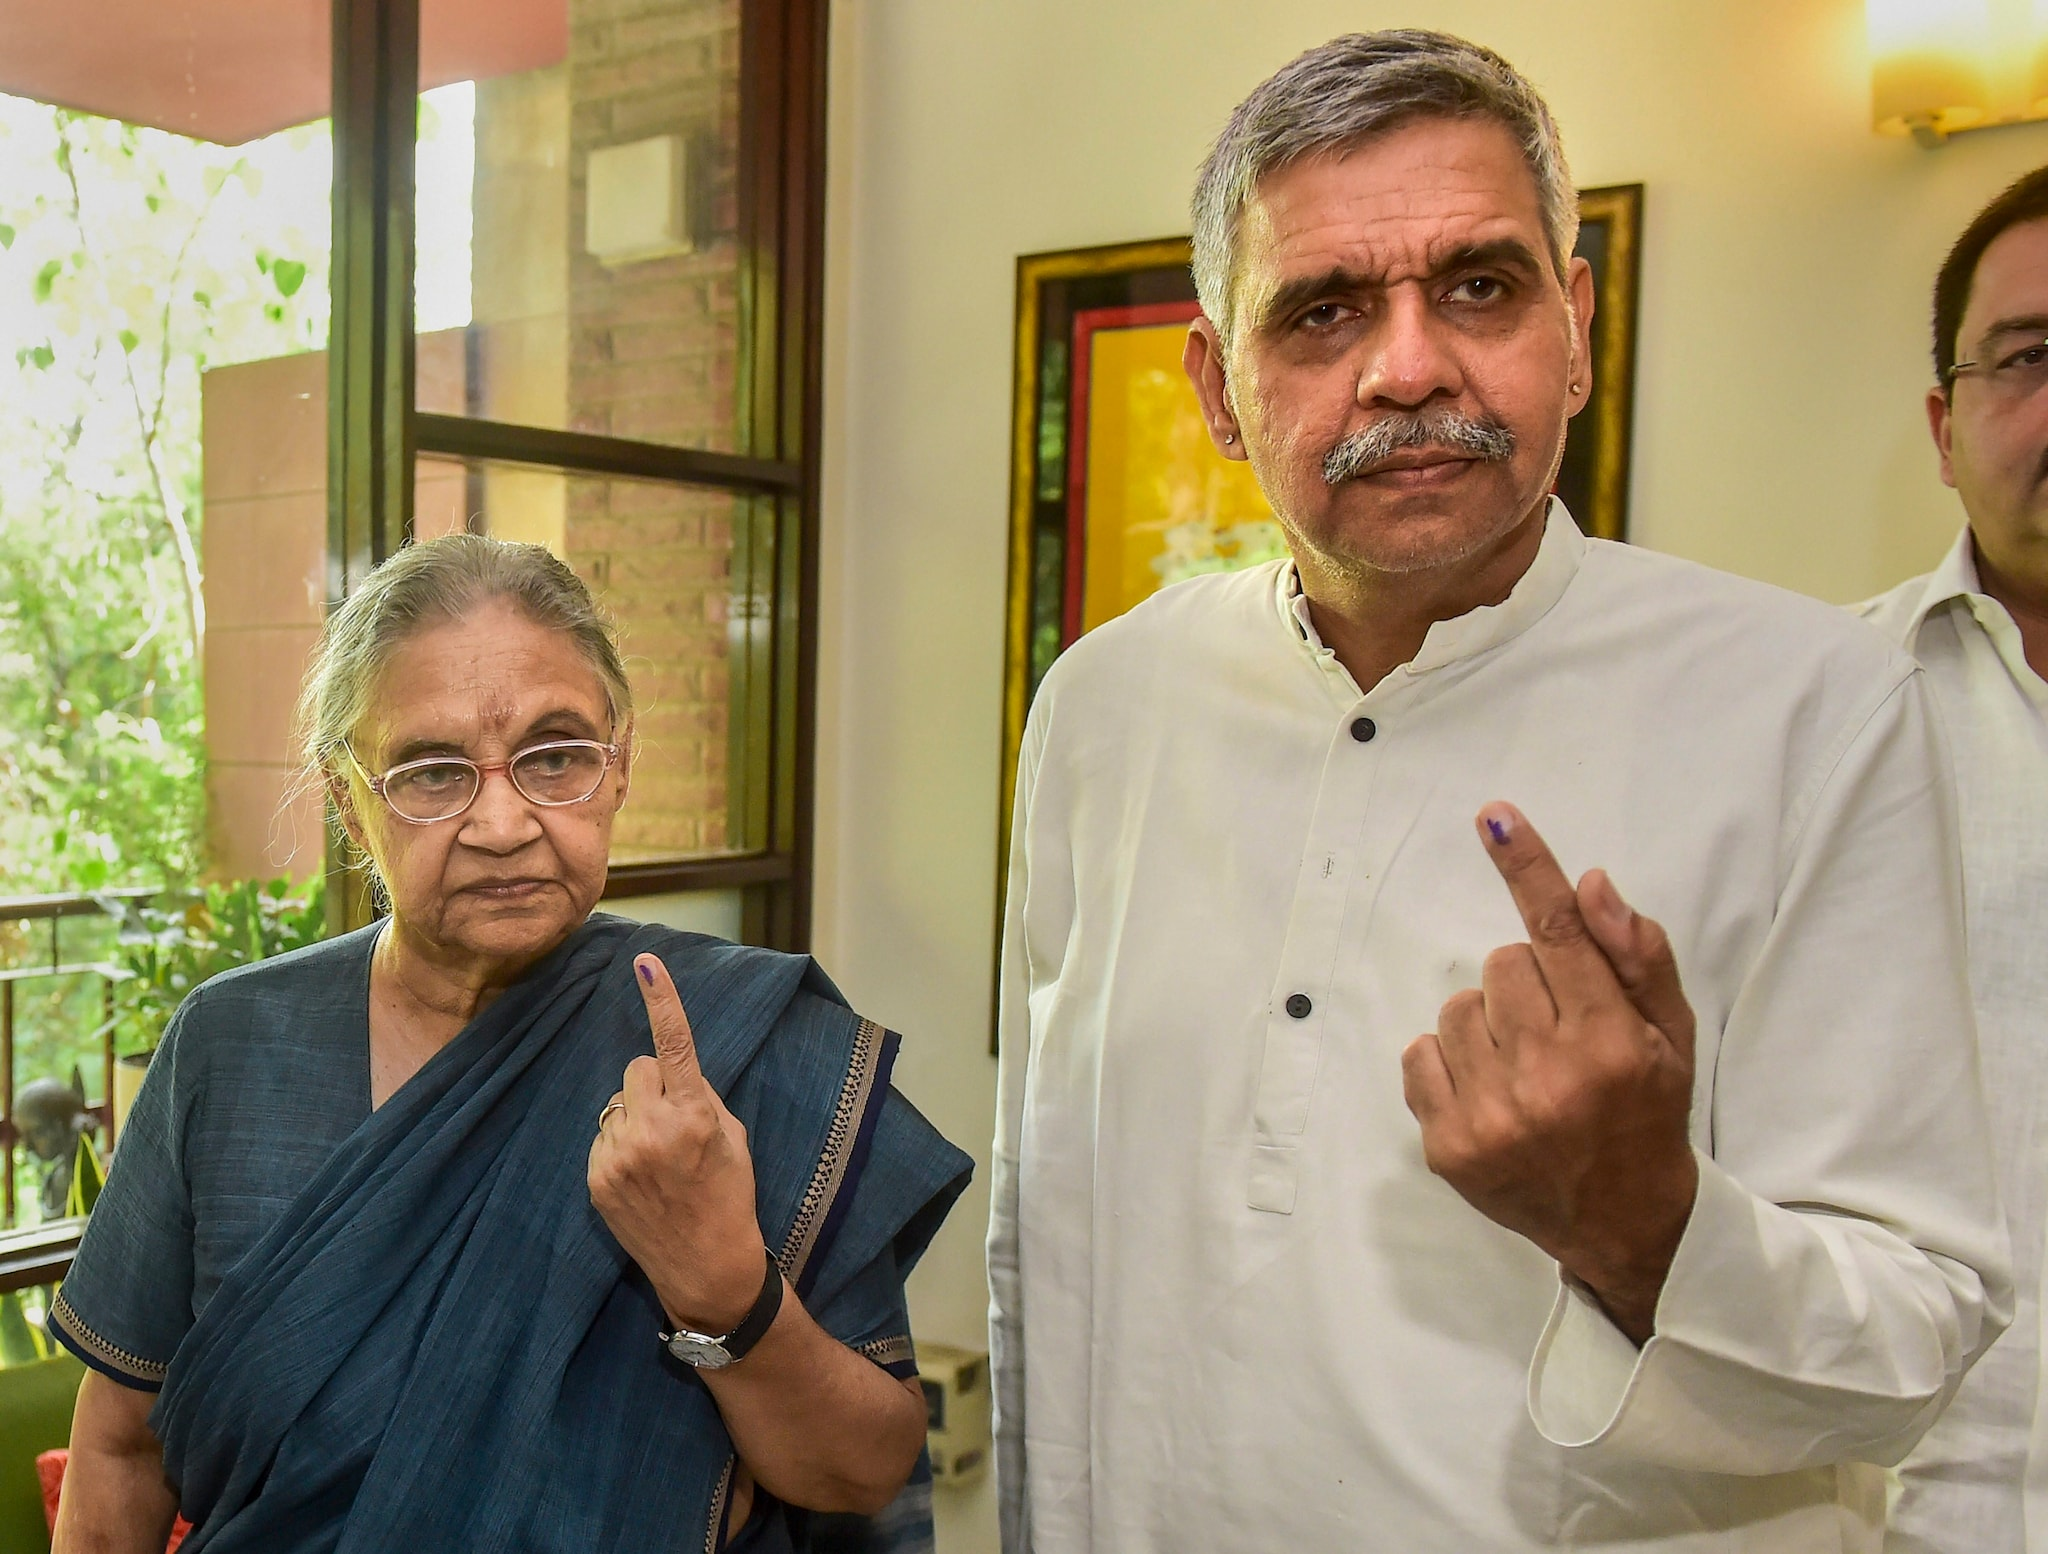 The Congress party's North East Delhi candidate Sheila Dikshit and her son Sandeep Dikshit show their inked fingers.